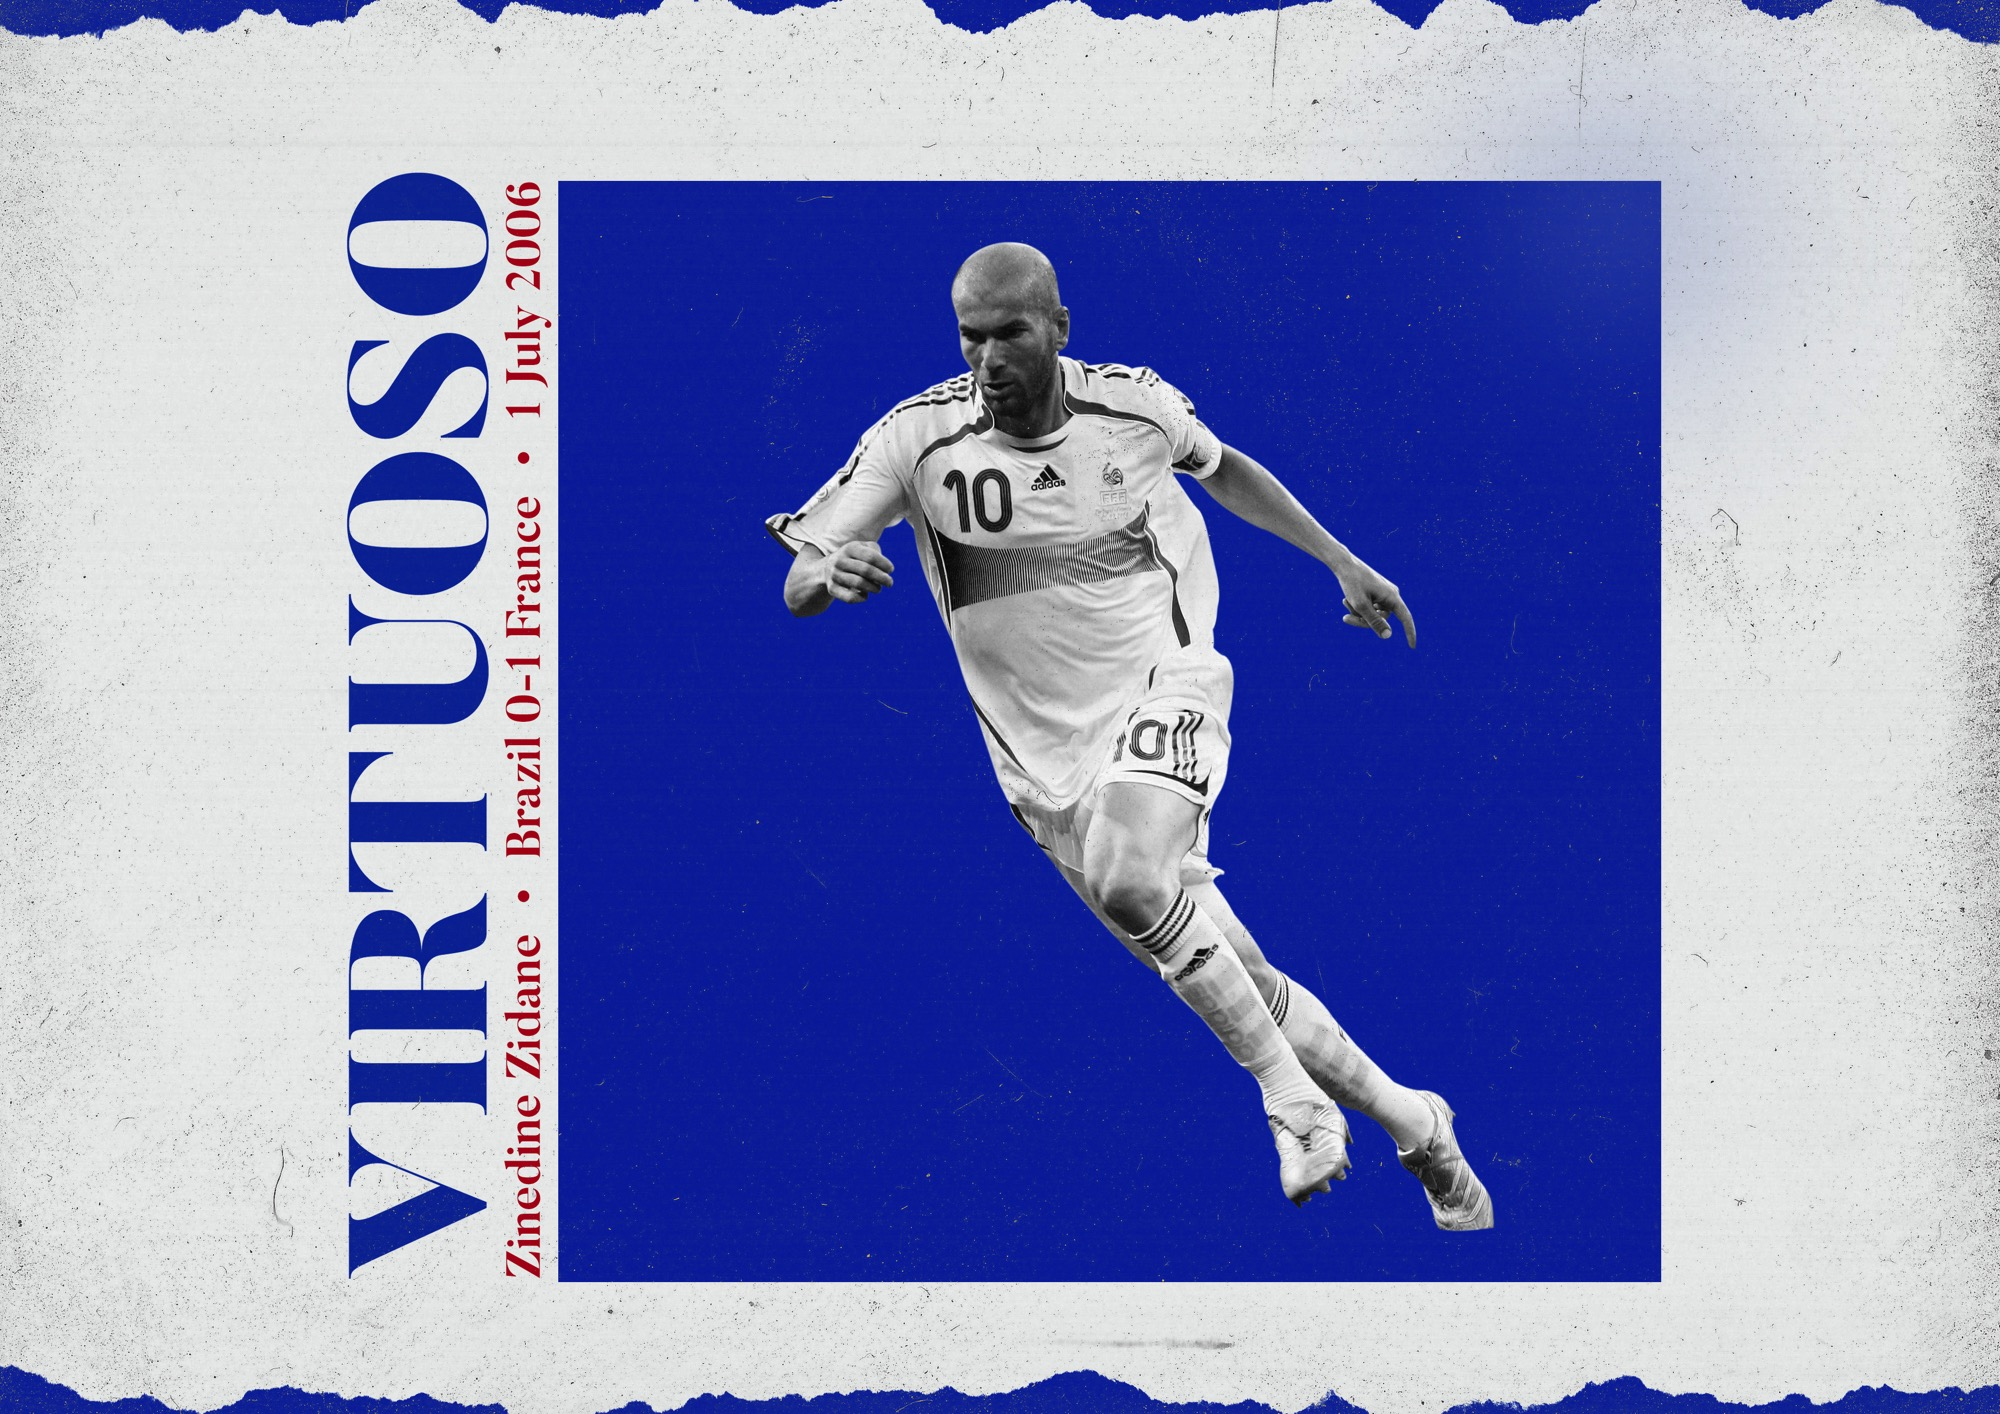 When Zinedine Zidane reminded us of his genius against Brazil in 2006